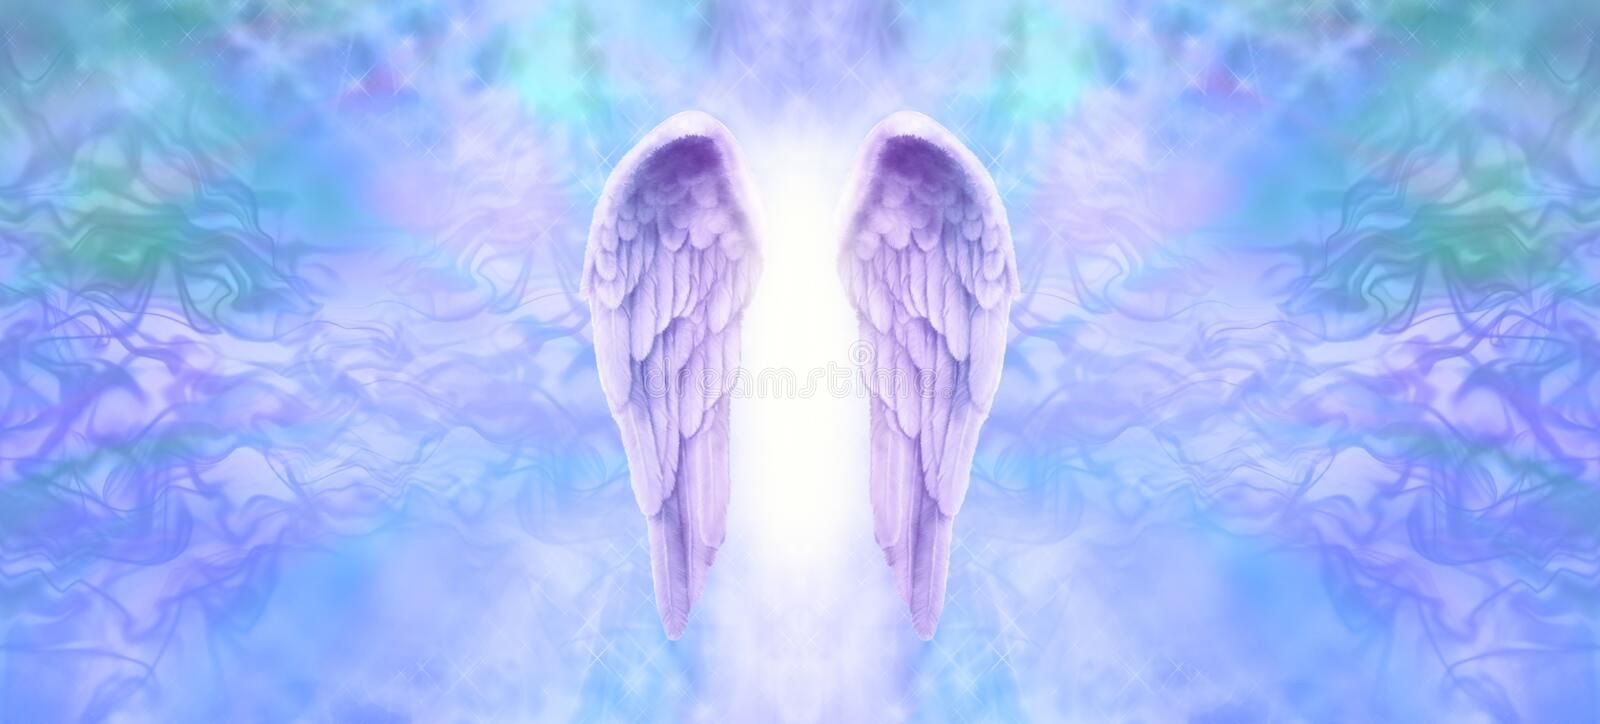 Lilac Angel Wings Banner vector illustration